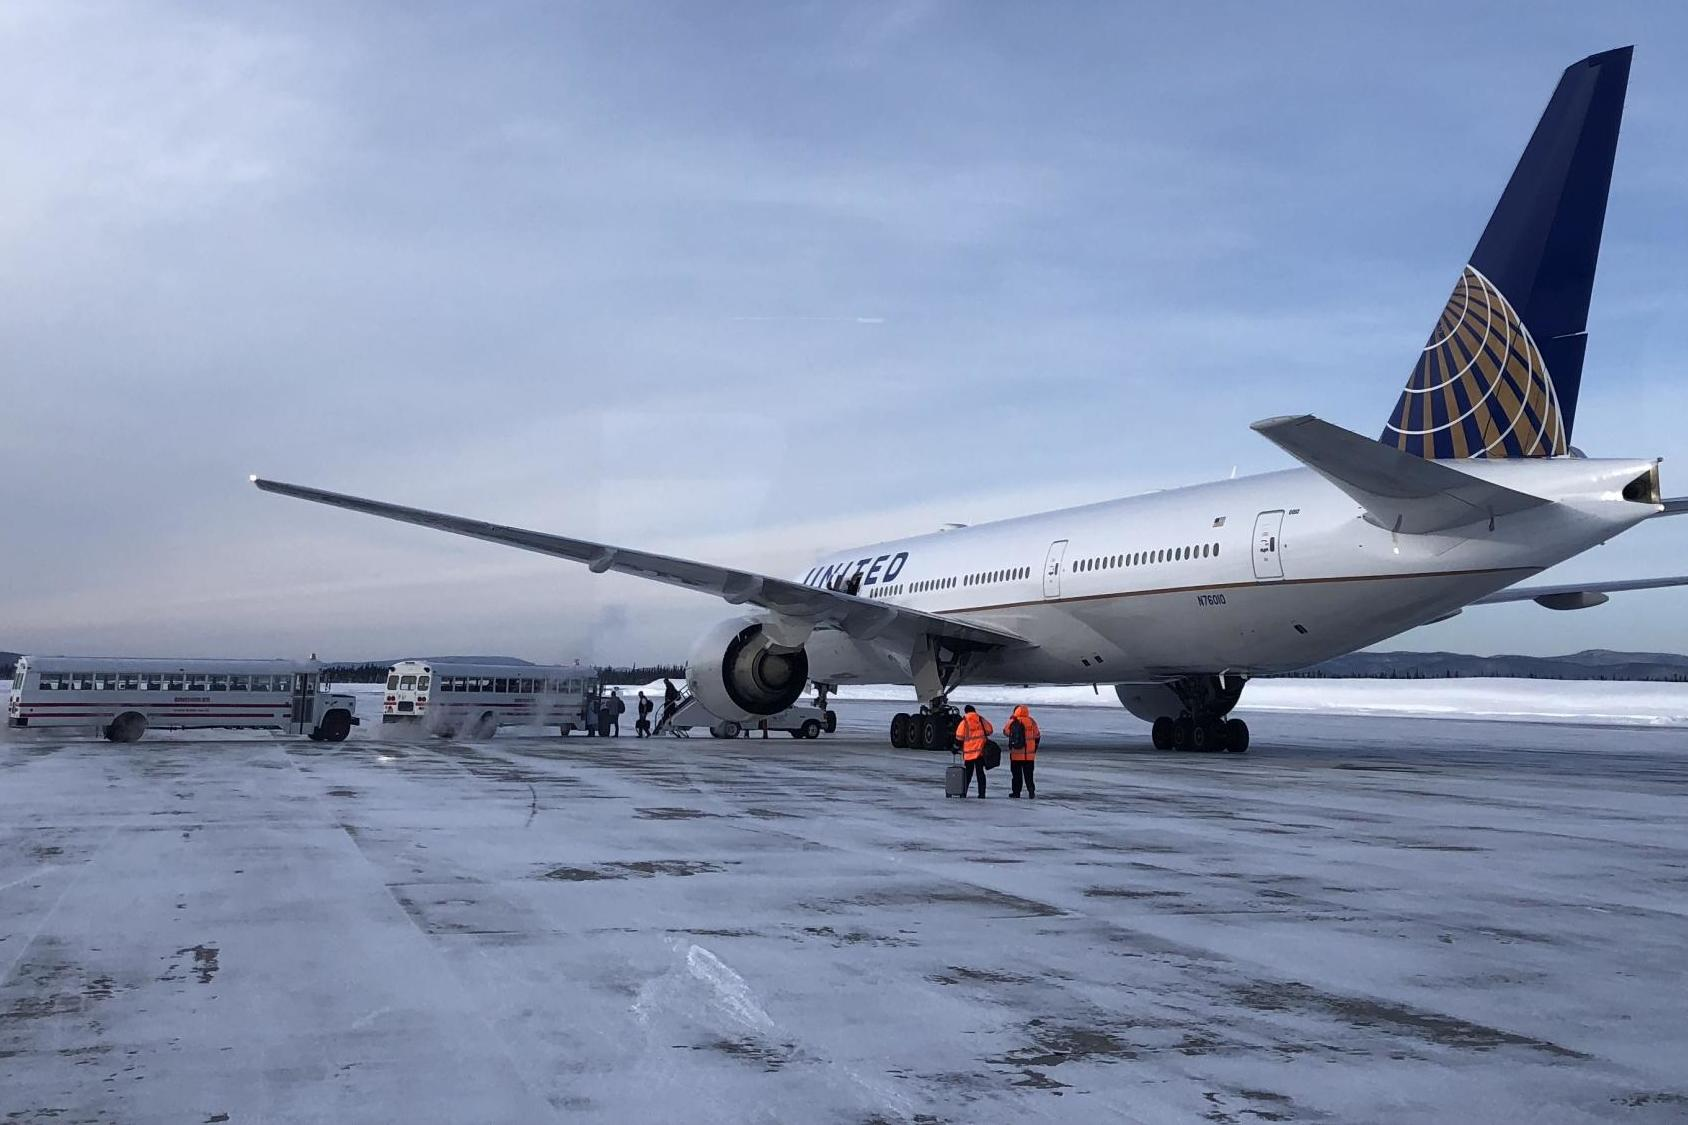 United Airline's 26-hour flight via the Arctic: What really happened